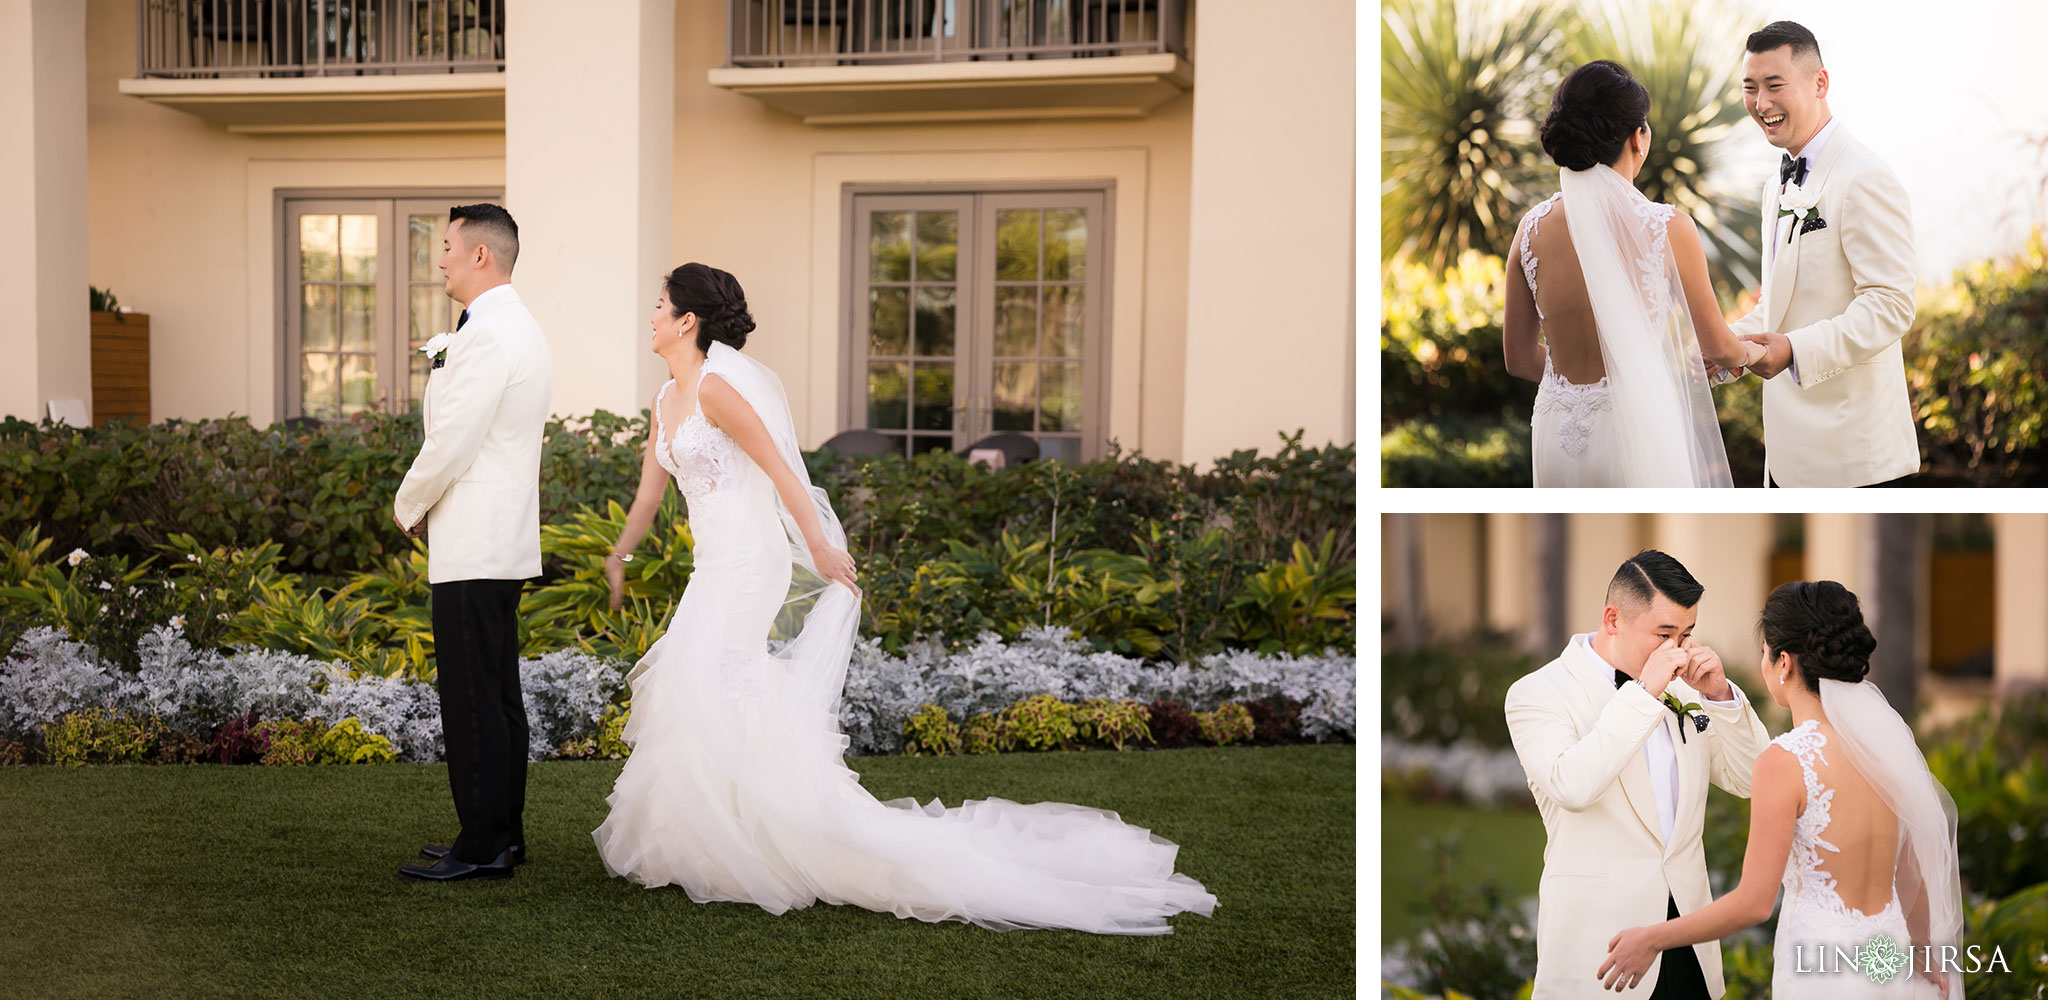 12 ritz carlton laguna niguel wedding photography